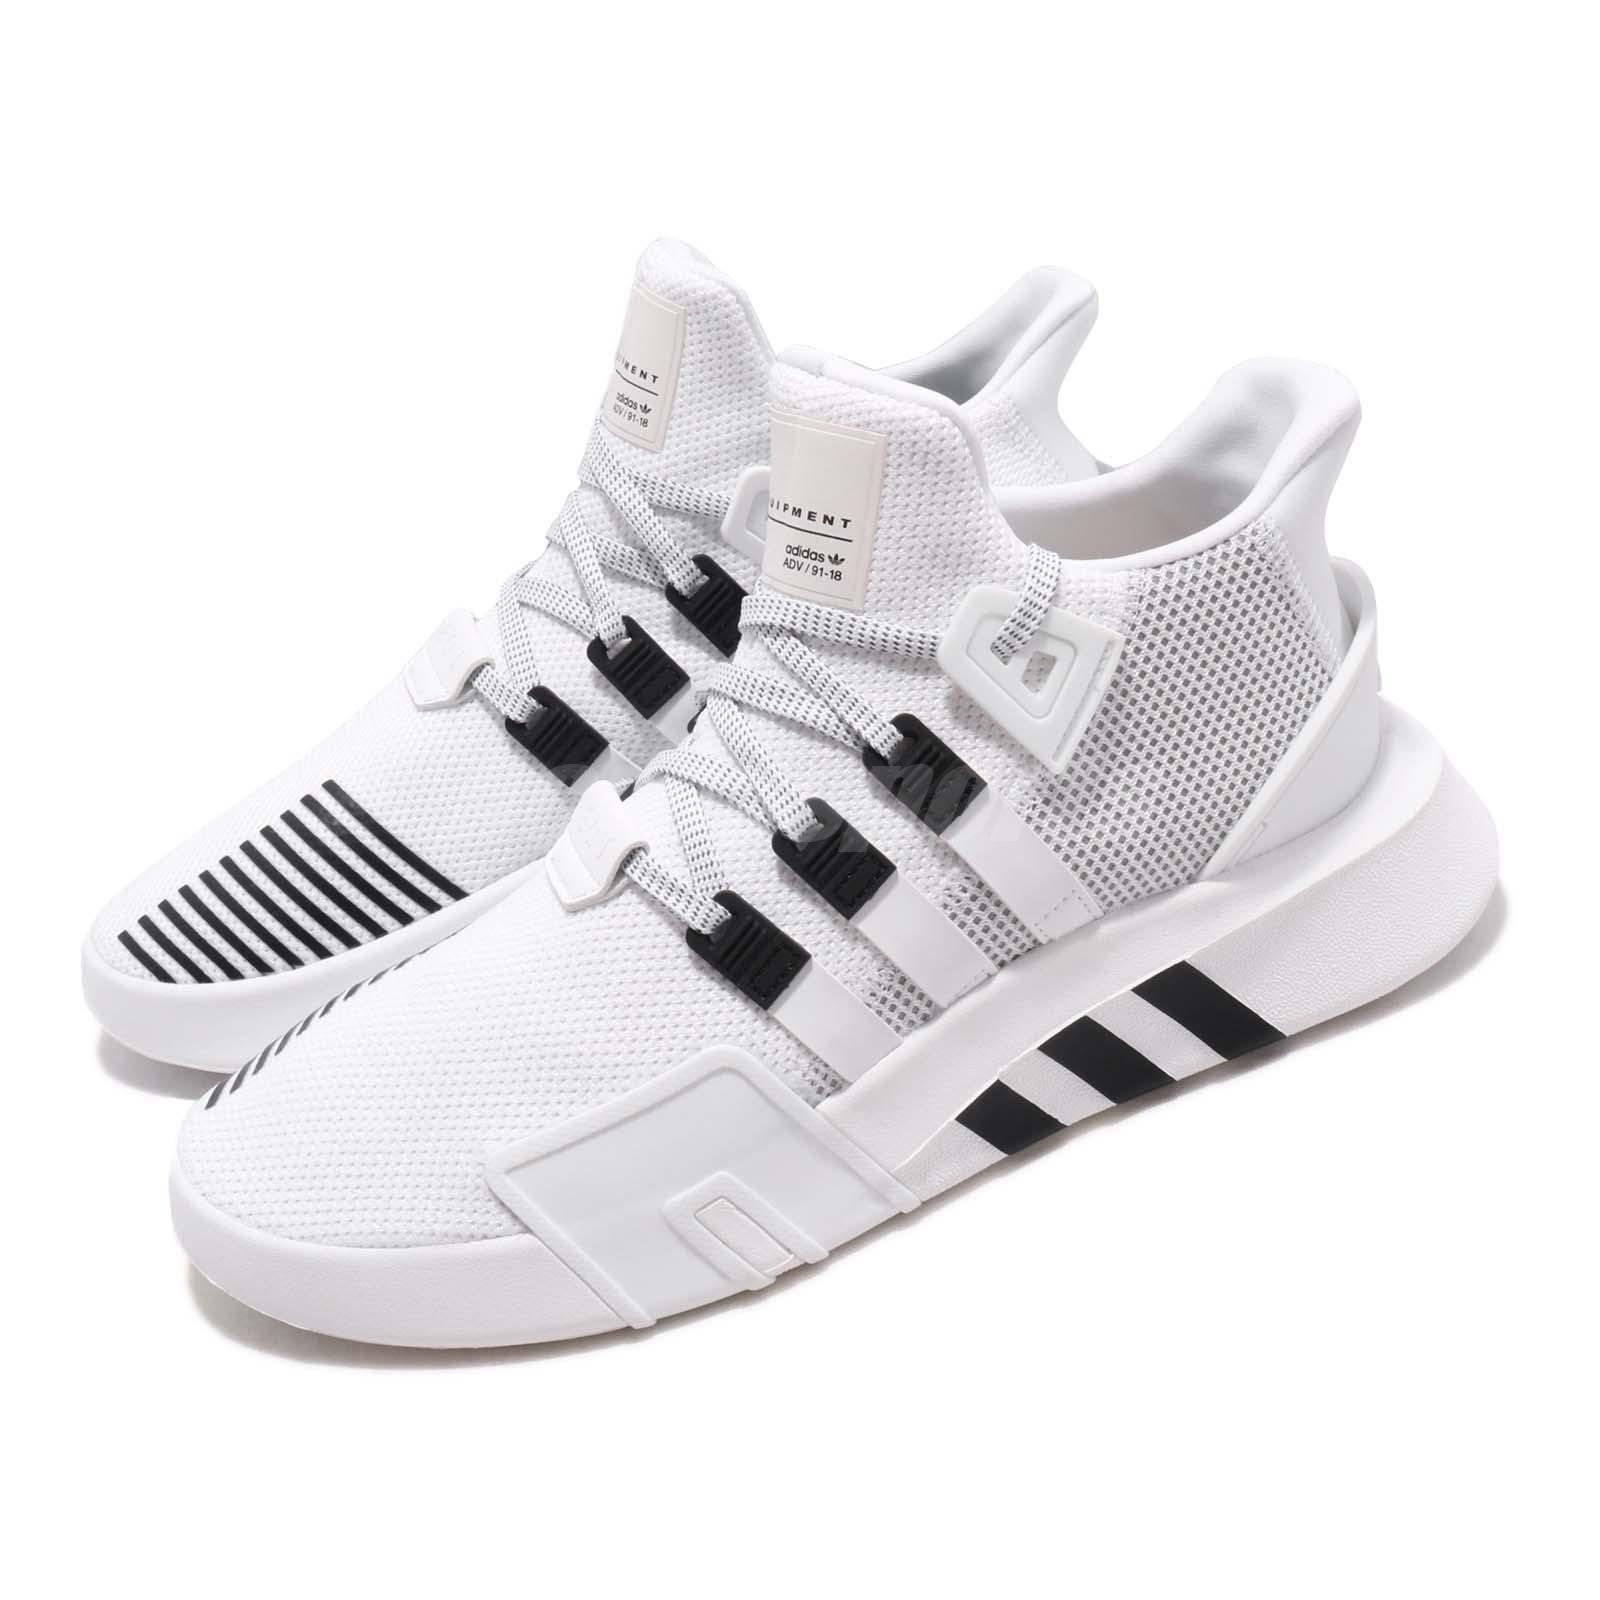 info for 4c97f a257e Details about adidas Originals EQT Bask ADV White Black Men Running Shoes  Sneakers BD7772